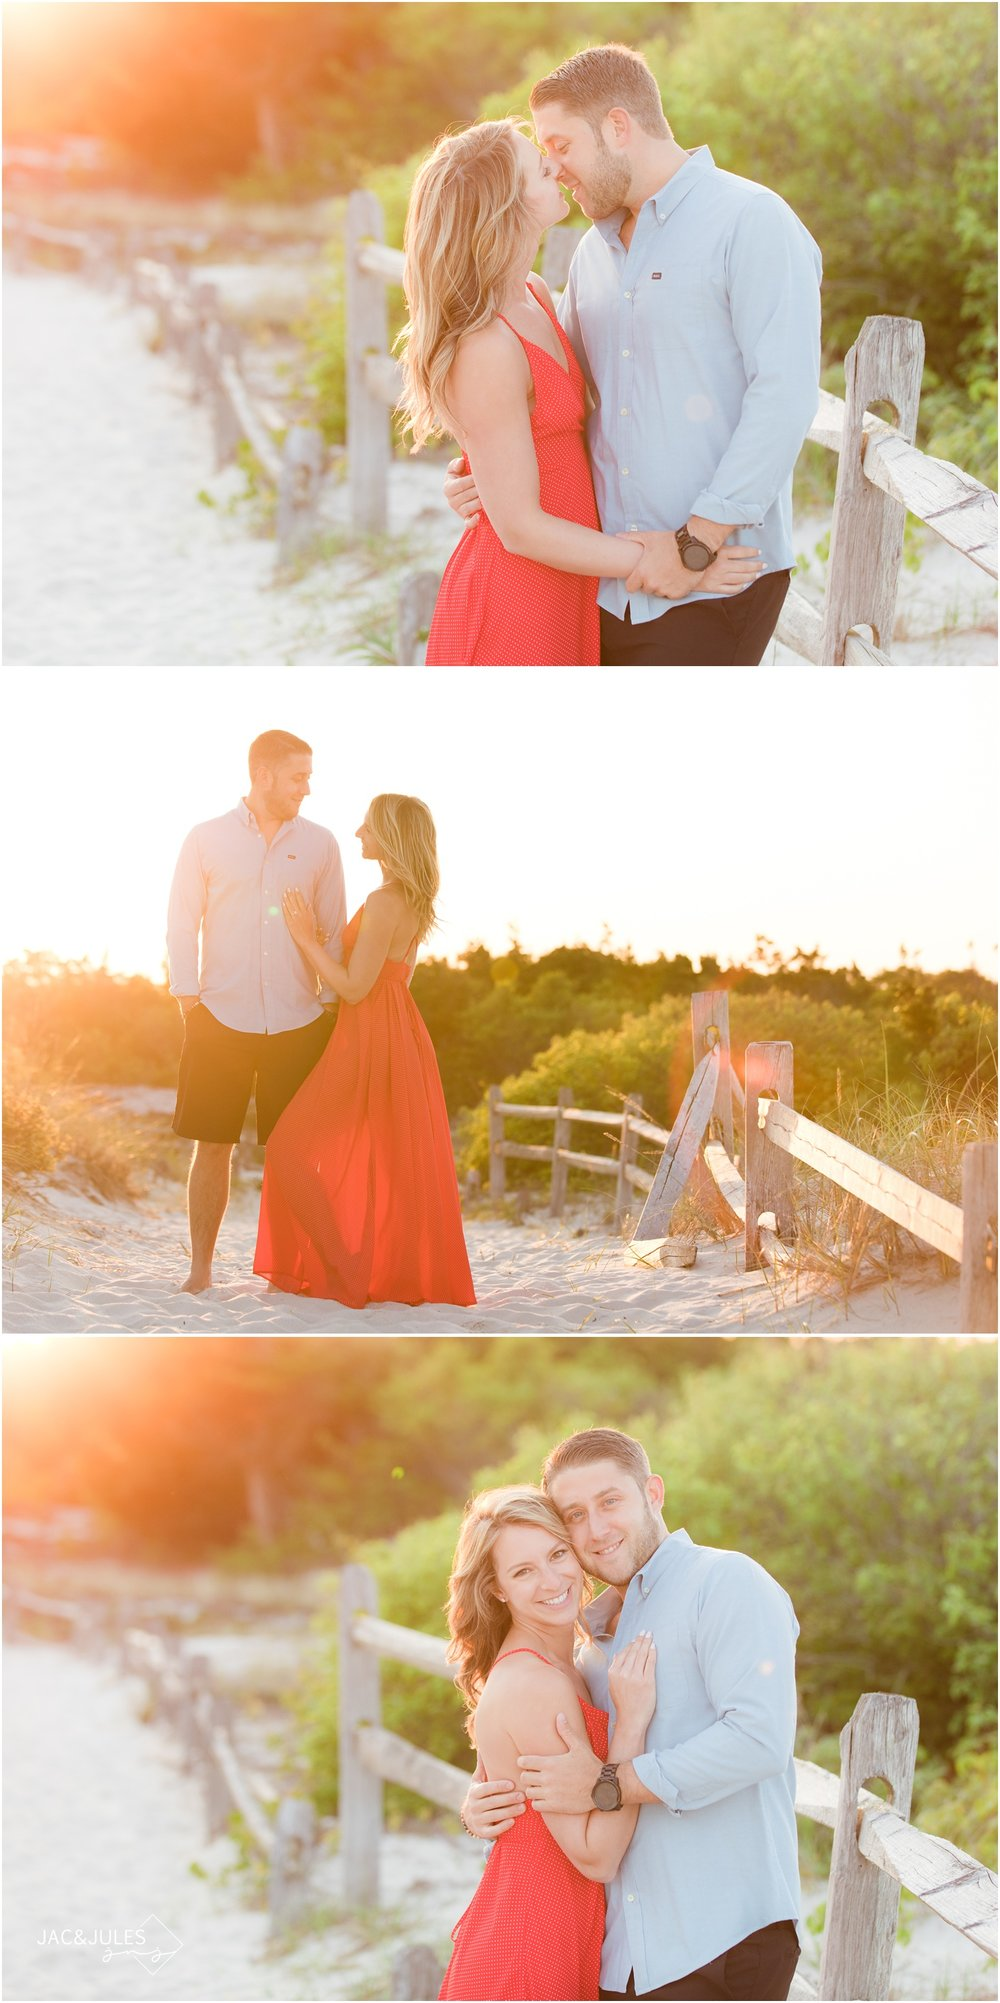 Dreamy, golden and romantic engagement photos on the beach at sunset at Island Beach State Park in Seaside Park, NJ.